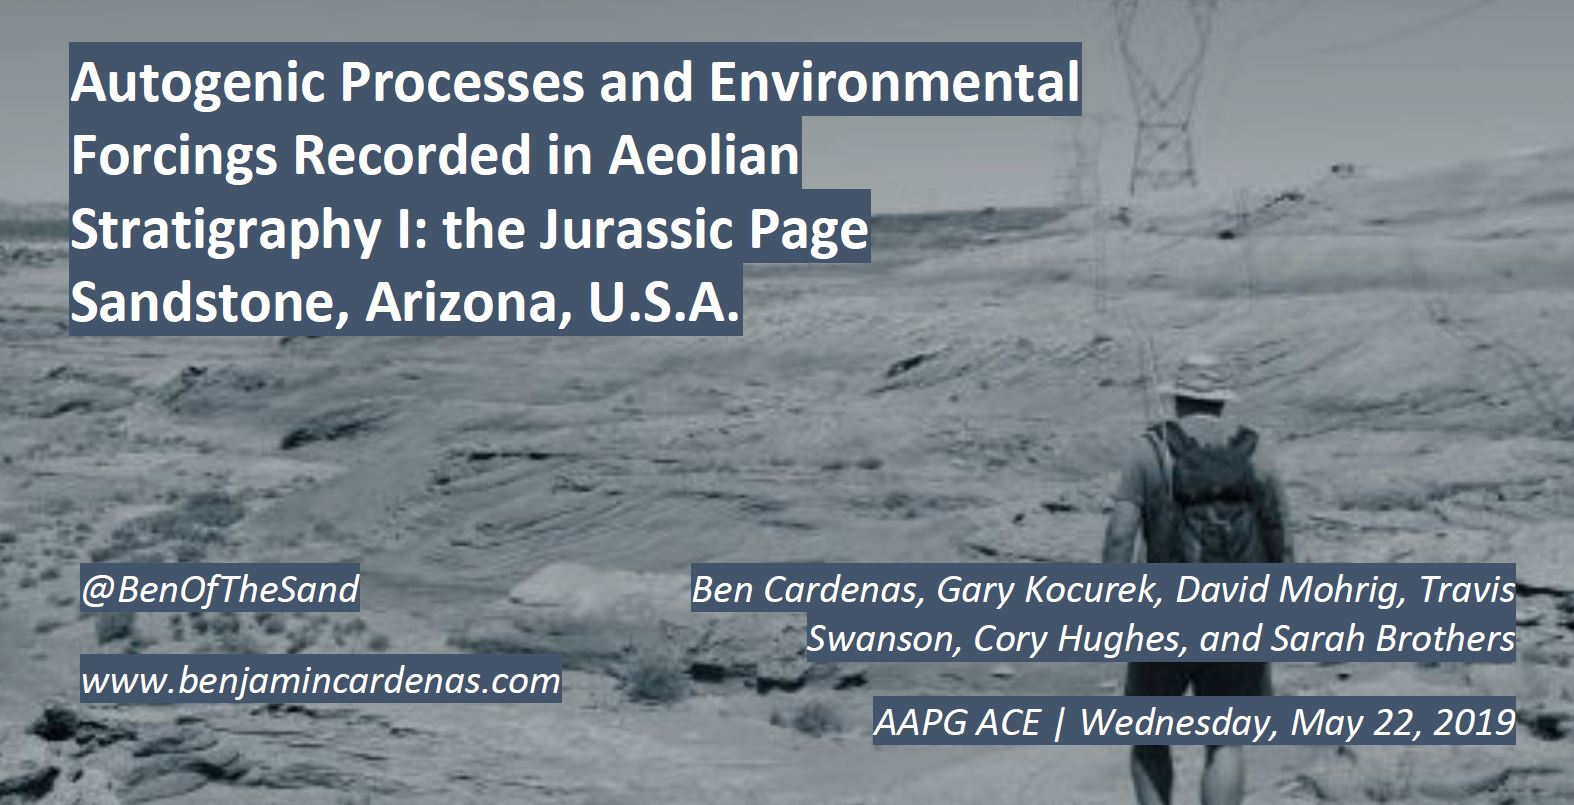 - Autogenic Processes and Environmental Forcings Recorded in Aeolian Stratigraphy I: the Jurassic Page Sandstone, Arizona, USAAAPG/SEPM Annual Convention and Expo, San Antonio, TX, May 22, 2019